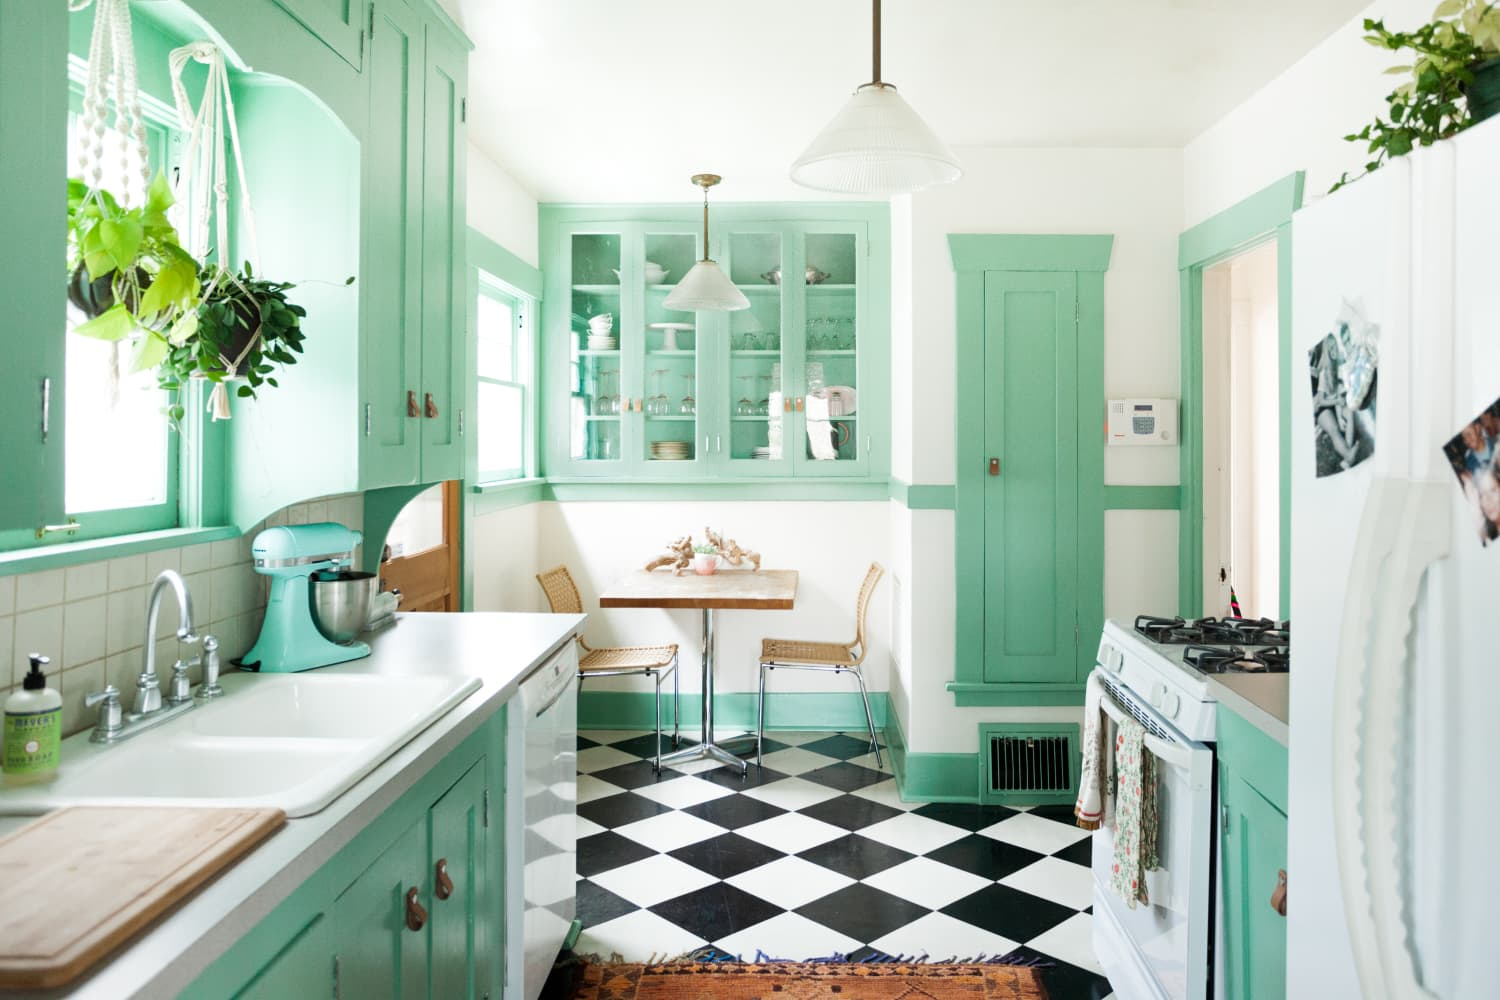 The Best (and Most Original) Paint Colors for Your Kitchen